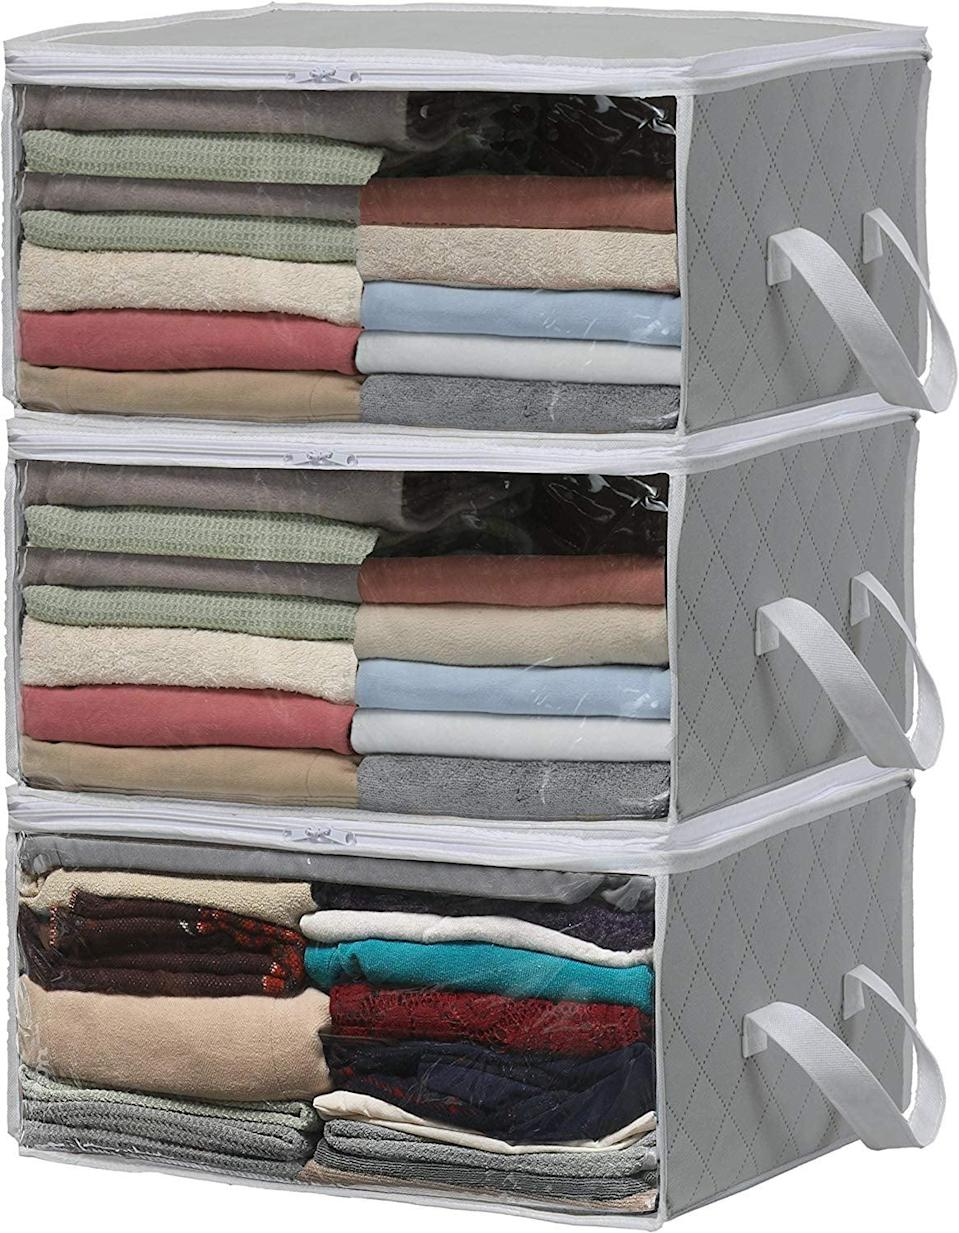 """<p>They may look soft, but the <a href=""""https://www.popsugar.com/buy/Simple%20Houseware%203-Pack%20Foldable%20Closet%20Organizers-465754?p_name=Simple%20Houseware%203-Pack%20Foldable%20Closet%20Organizers&retailer=amazon.com&price=15&evar1=casa%3Auk&evar9=46355519&evar98=https%3A%2F%2Fwww.popsugar.com%2Fhome%2Fphoto-gallery%2F46355519%2Fimage%2F46355559%2FSimple-Houseware-3-Pack-Foldable-Closet-Organizers&list1=college%2Corganization%2Cclosets%2Csmall%20spaces%2Ccloset%20organization%2Csmall%20space%20living%2Cdorms&prop13=api&pdata=1"""" rel=""""nofollow noopener"""" target=""""_blank"""" data-ylk=""""slk:Simple Houseware 3-Pack Foldable Closet Organizers"""" class=""""link rapid-noclick-resp"""">Simple Houseware 3-Pack Foldable Closet Organizers</a> ($15, originally $17) are surprisingly rigid and durable, making them perfect for both closet storage and travel.</p>"""